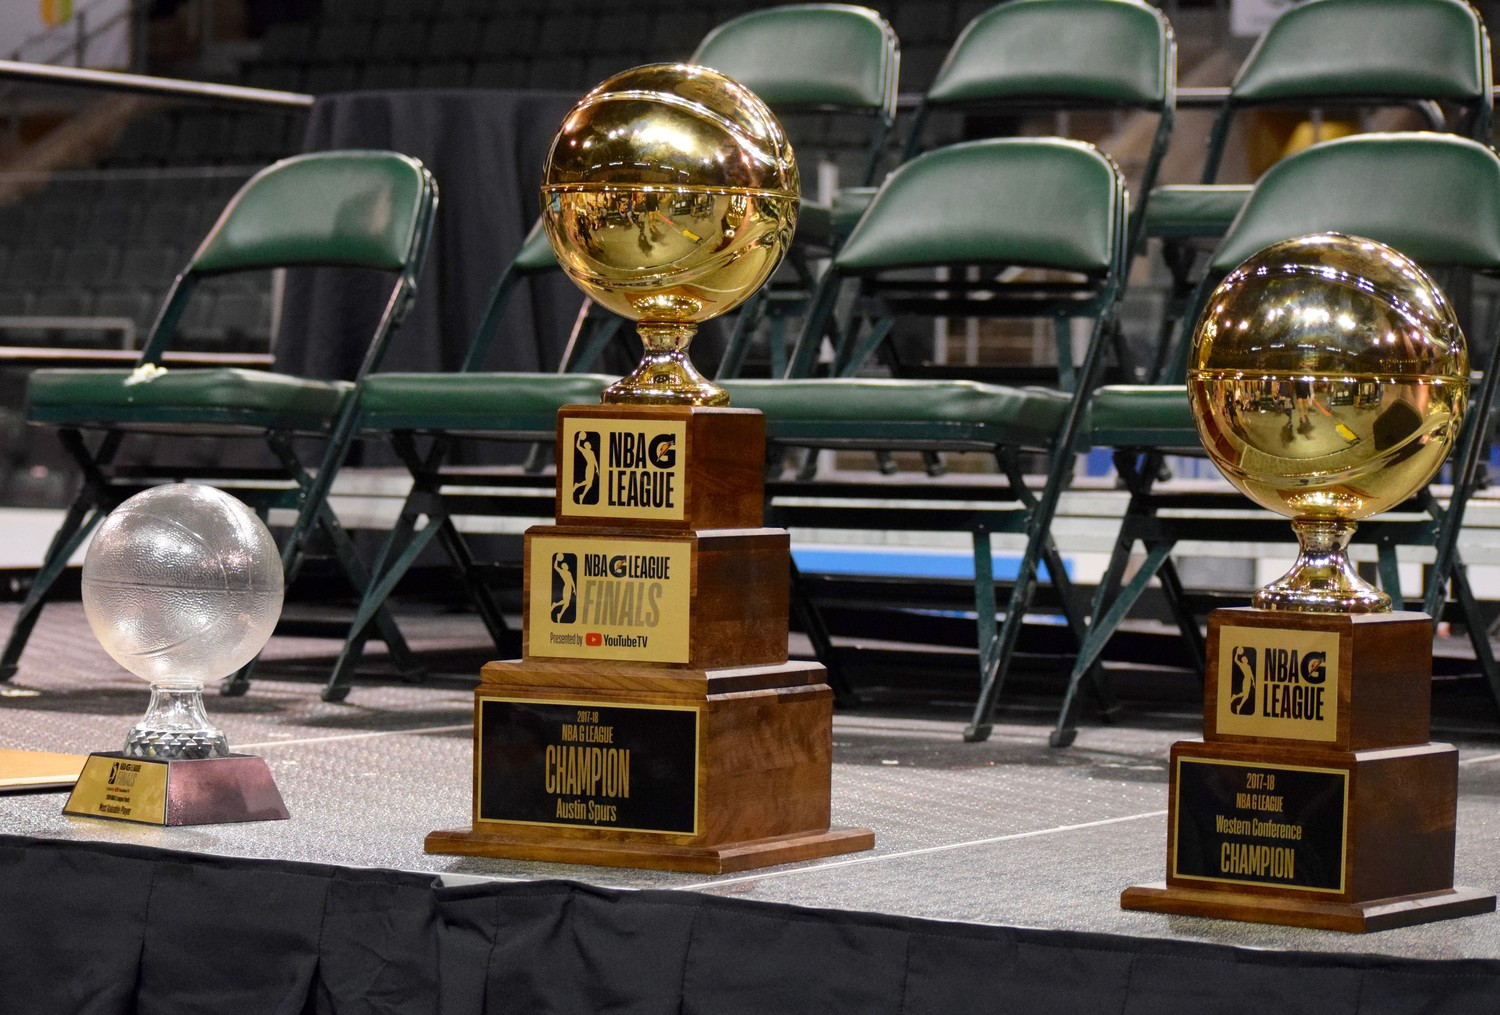 From left: Nick Johnson's Finals MVP Trophy, the NBA G League Championship trophy and the Western Conference Championship.